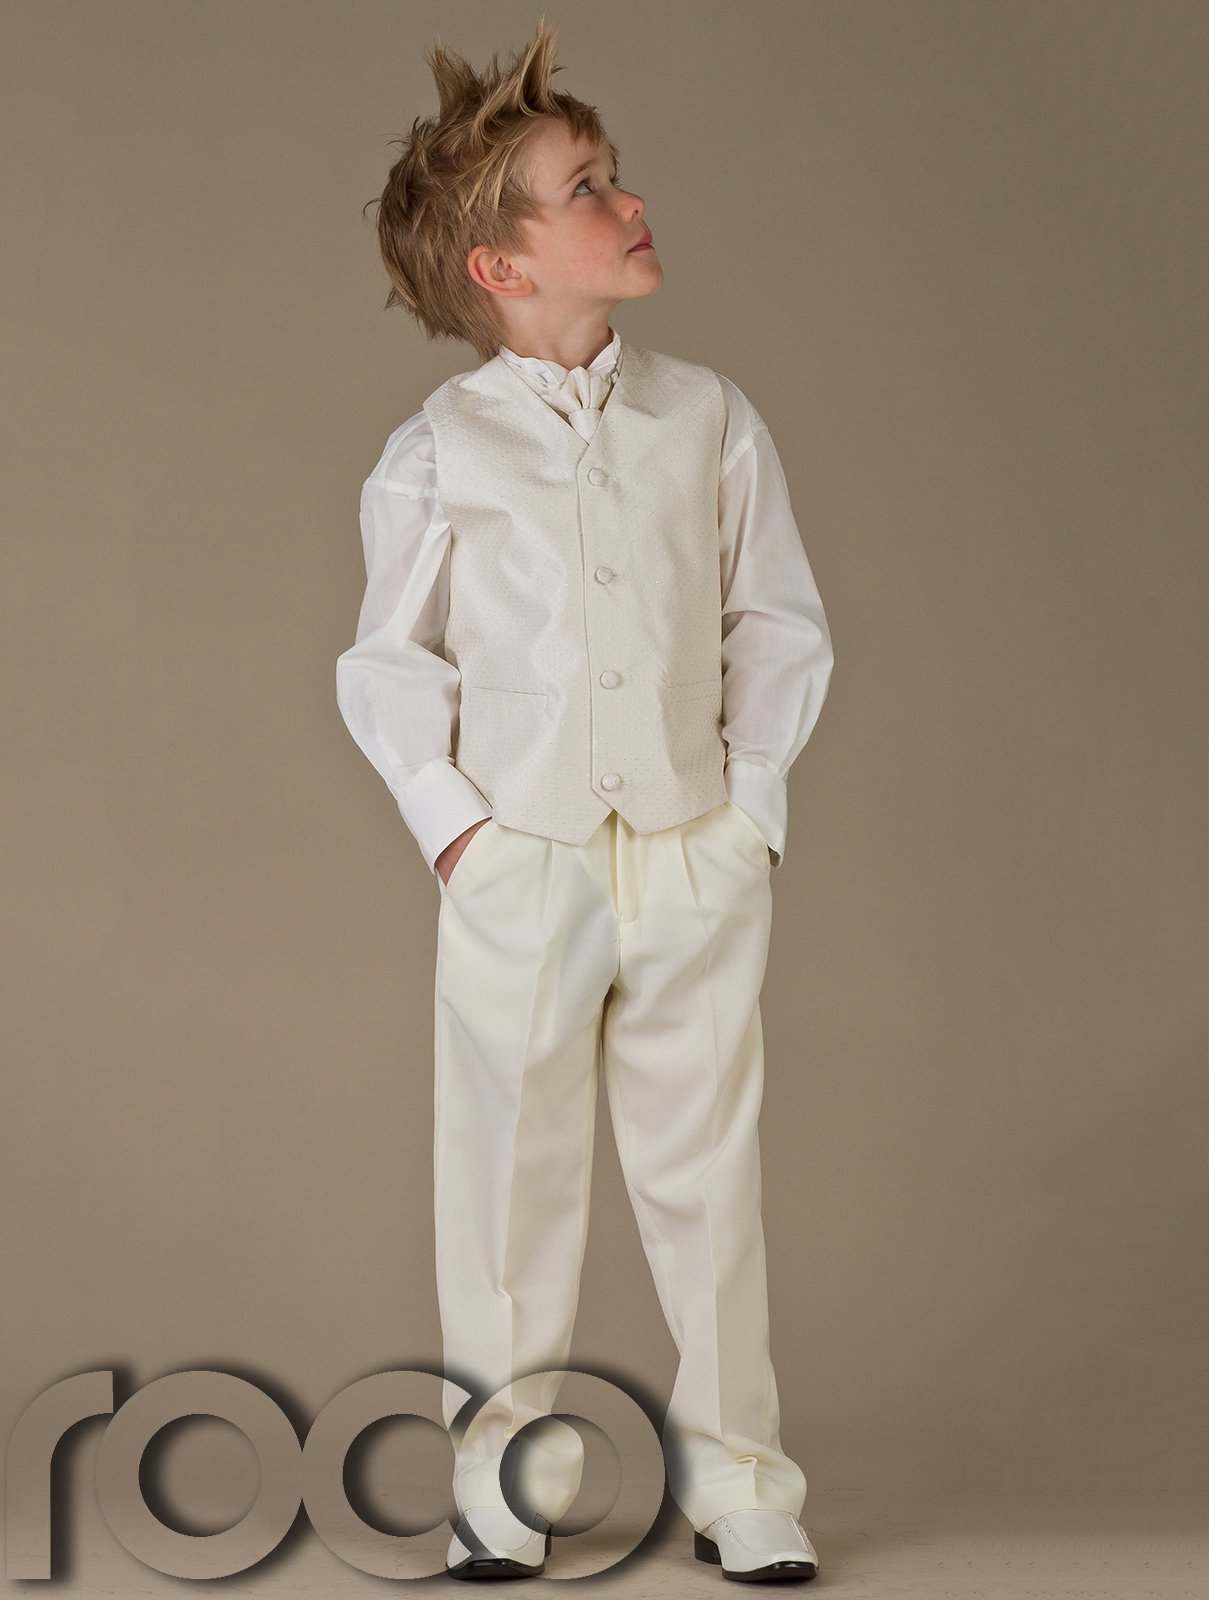 Older Boys 3yrs - 16yrs - shop for s of products online at Next USA. International shipping and returns available.